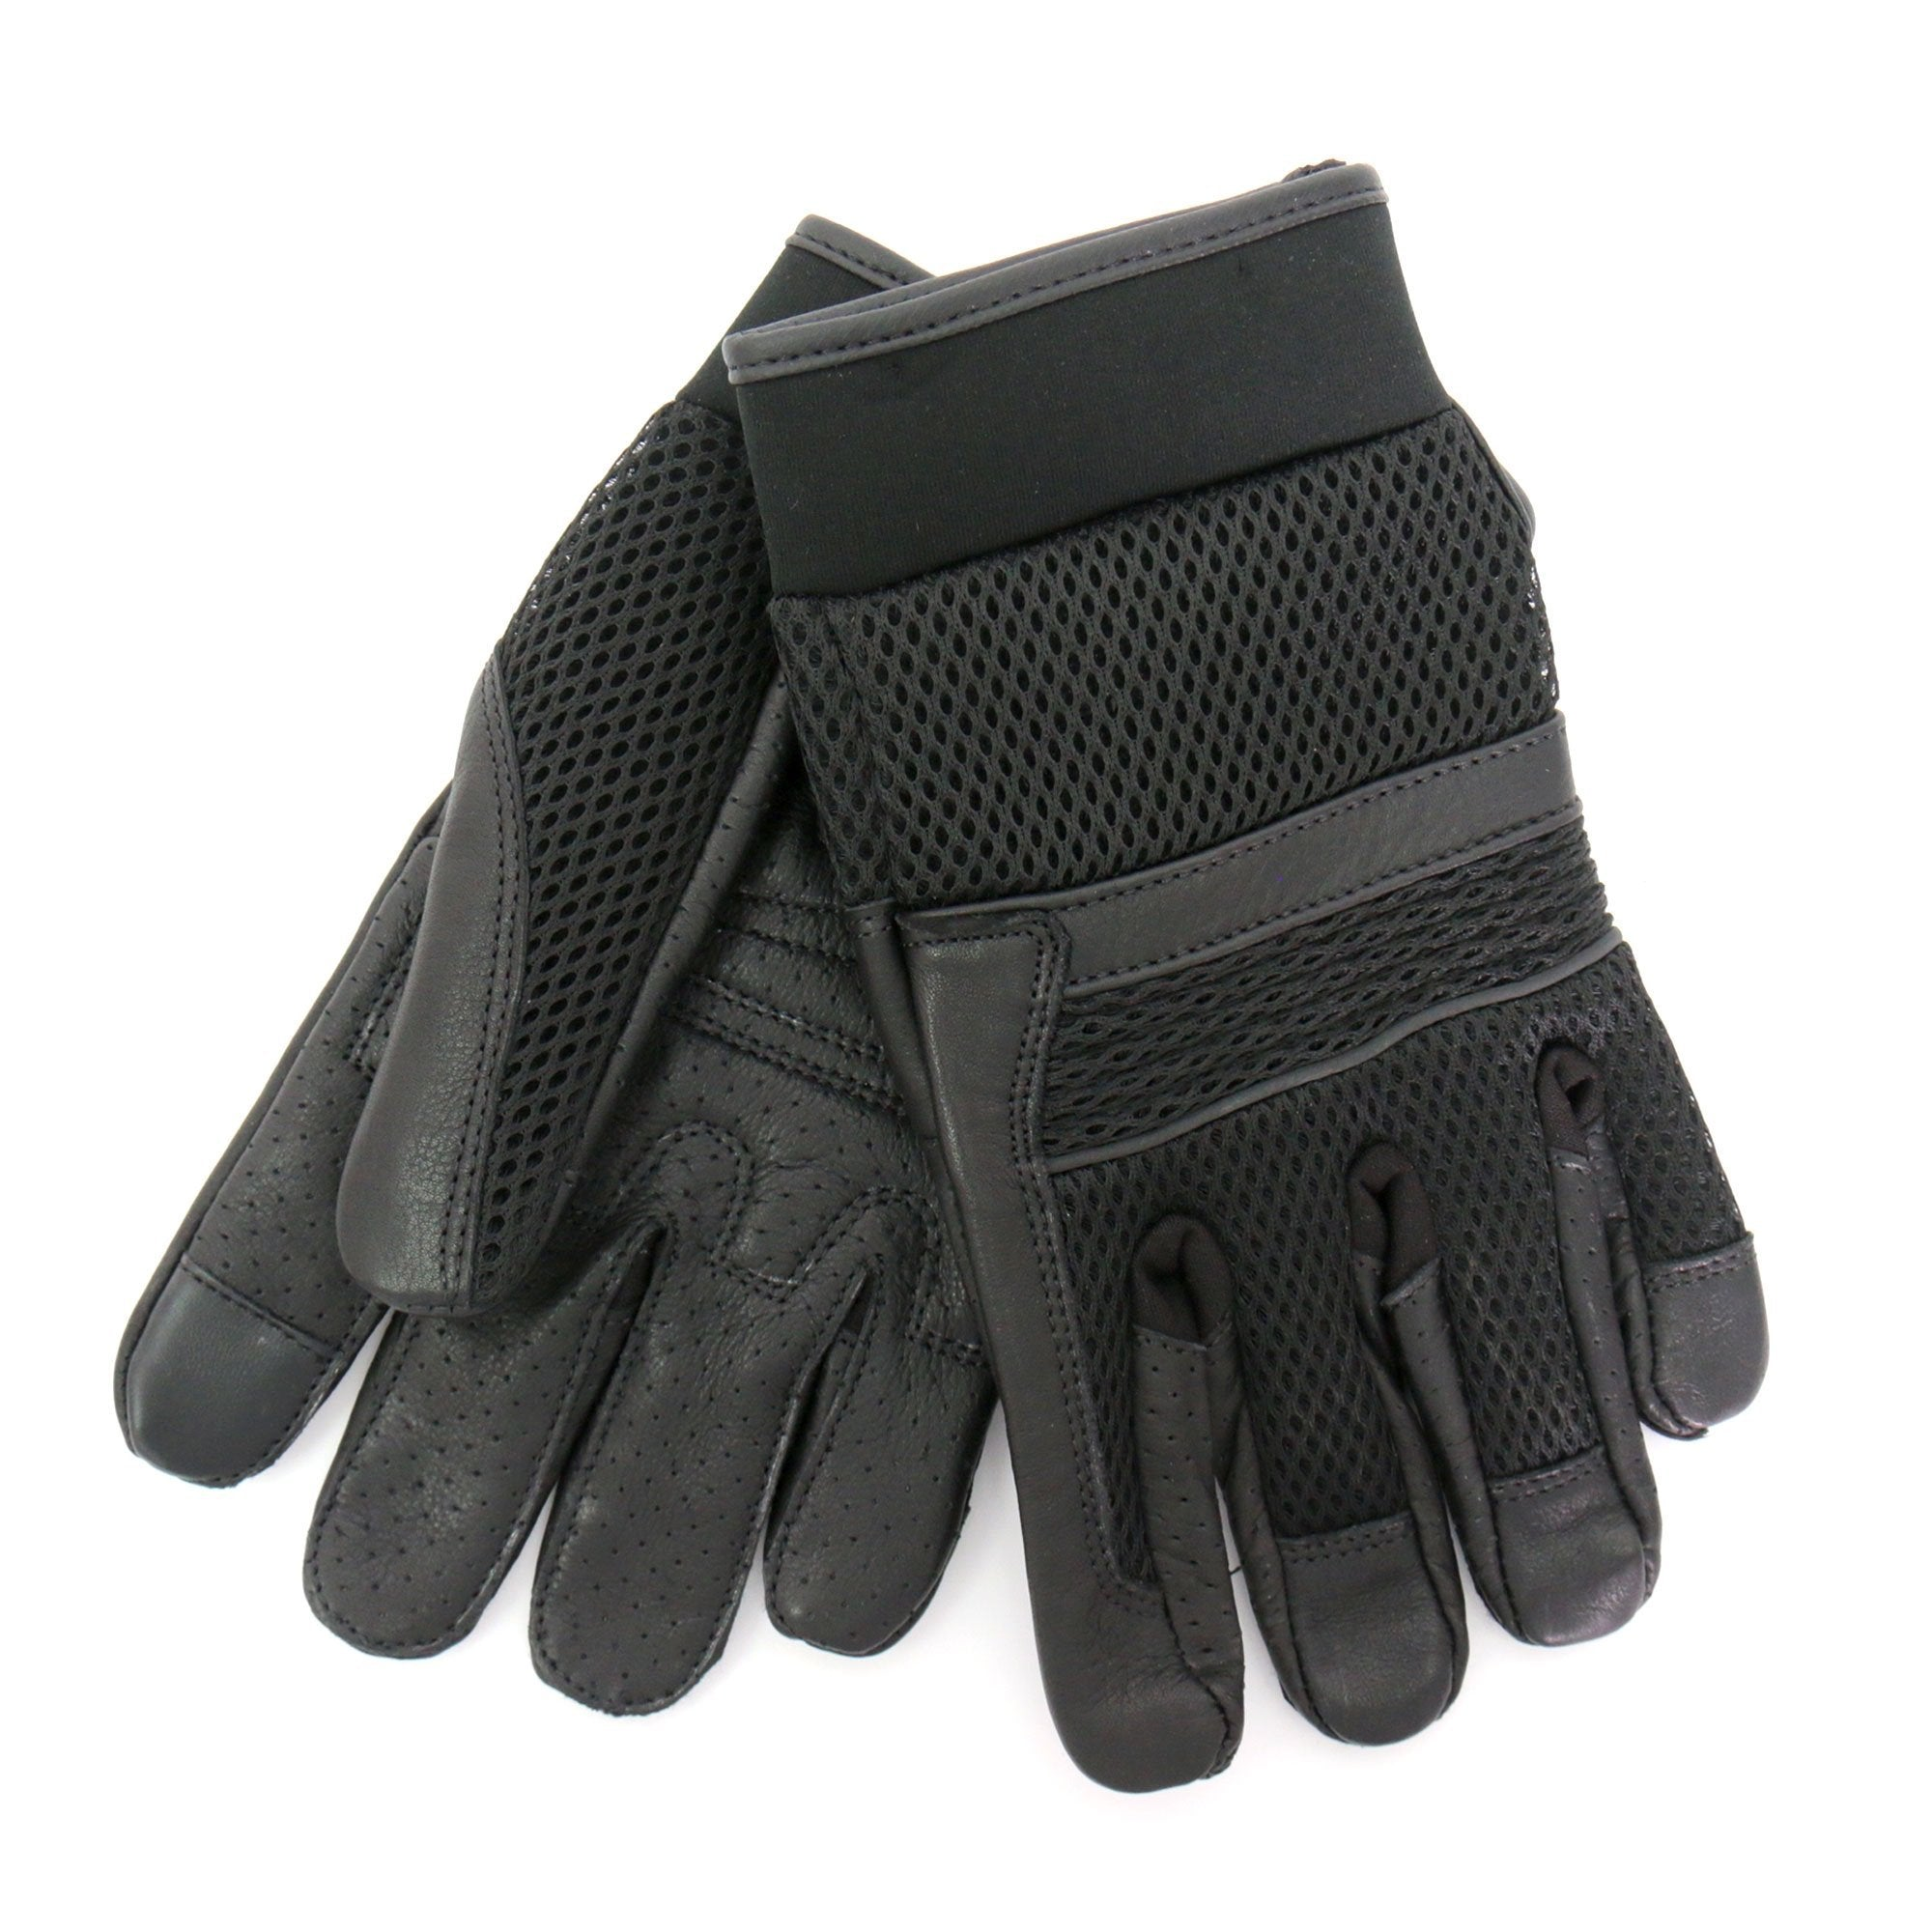 Hot Leathers GVM1027 Mens Mesh and Leather Gloves with Piping